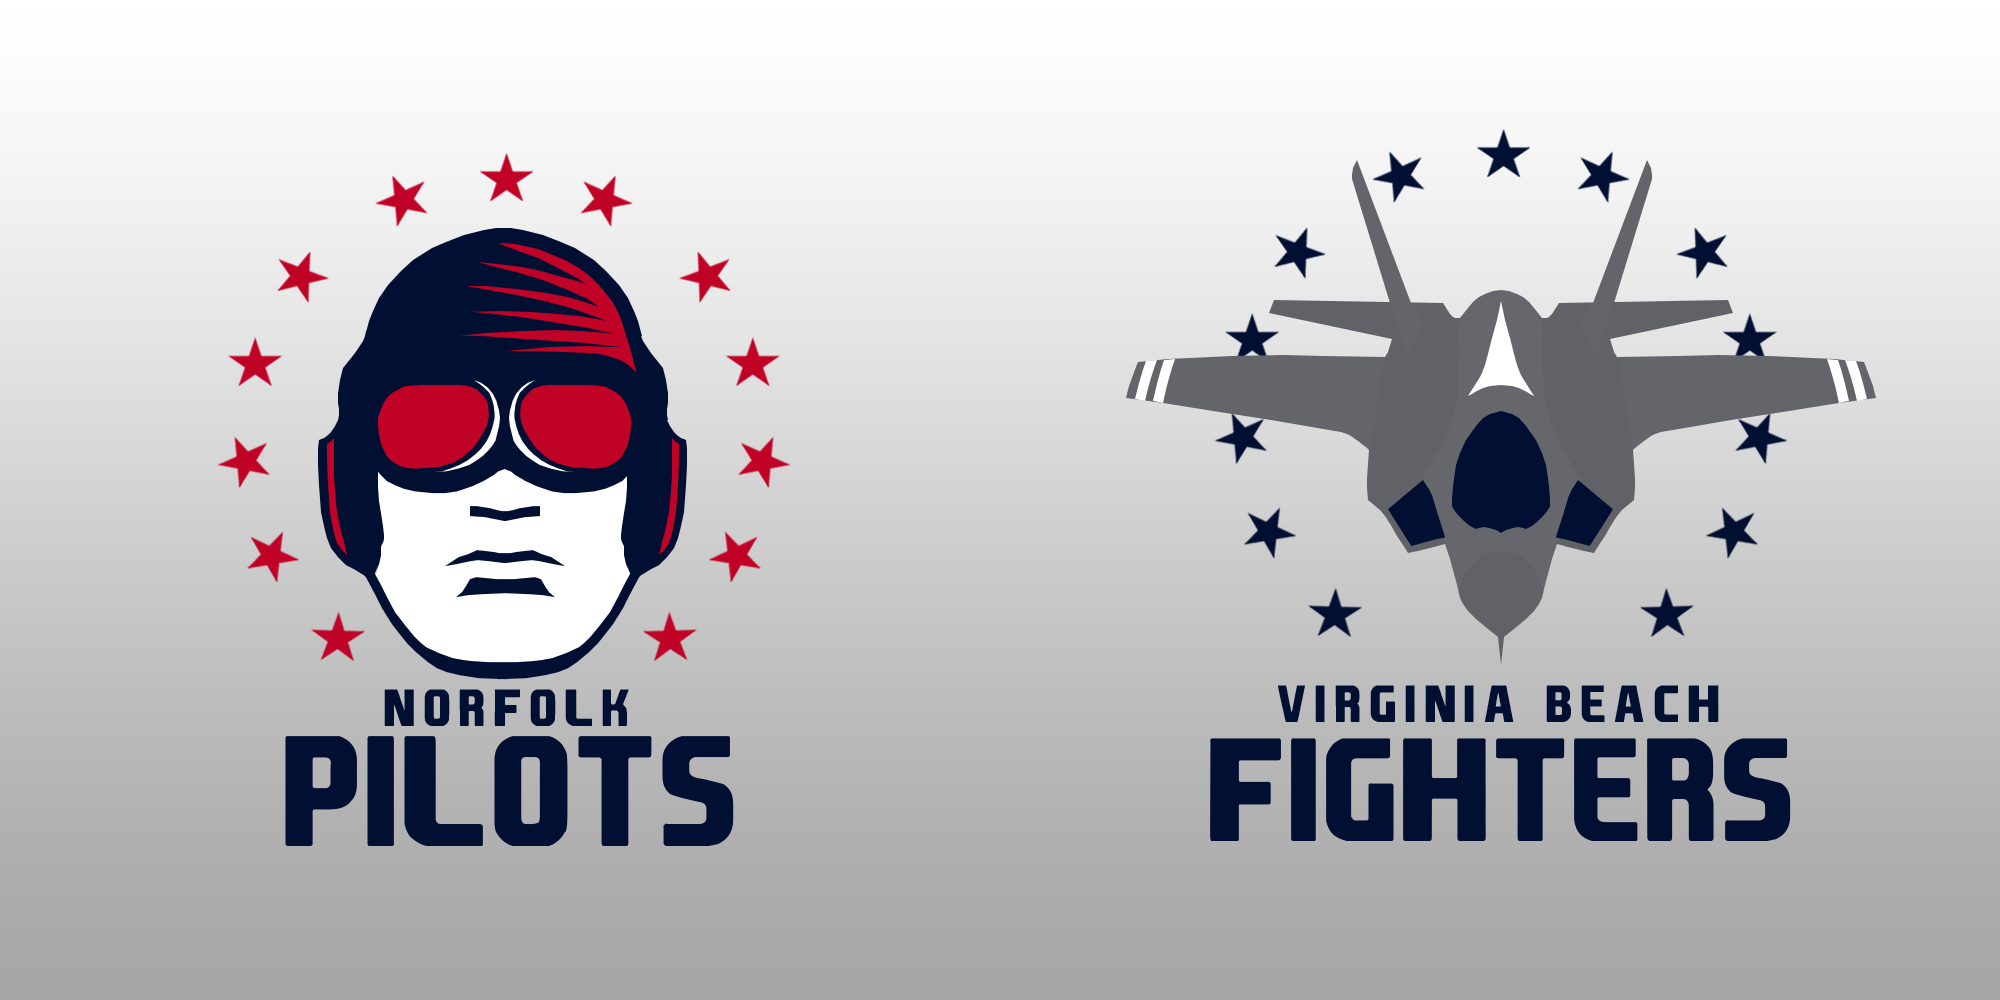 Pilots Fighters Logos.png